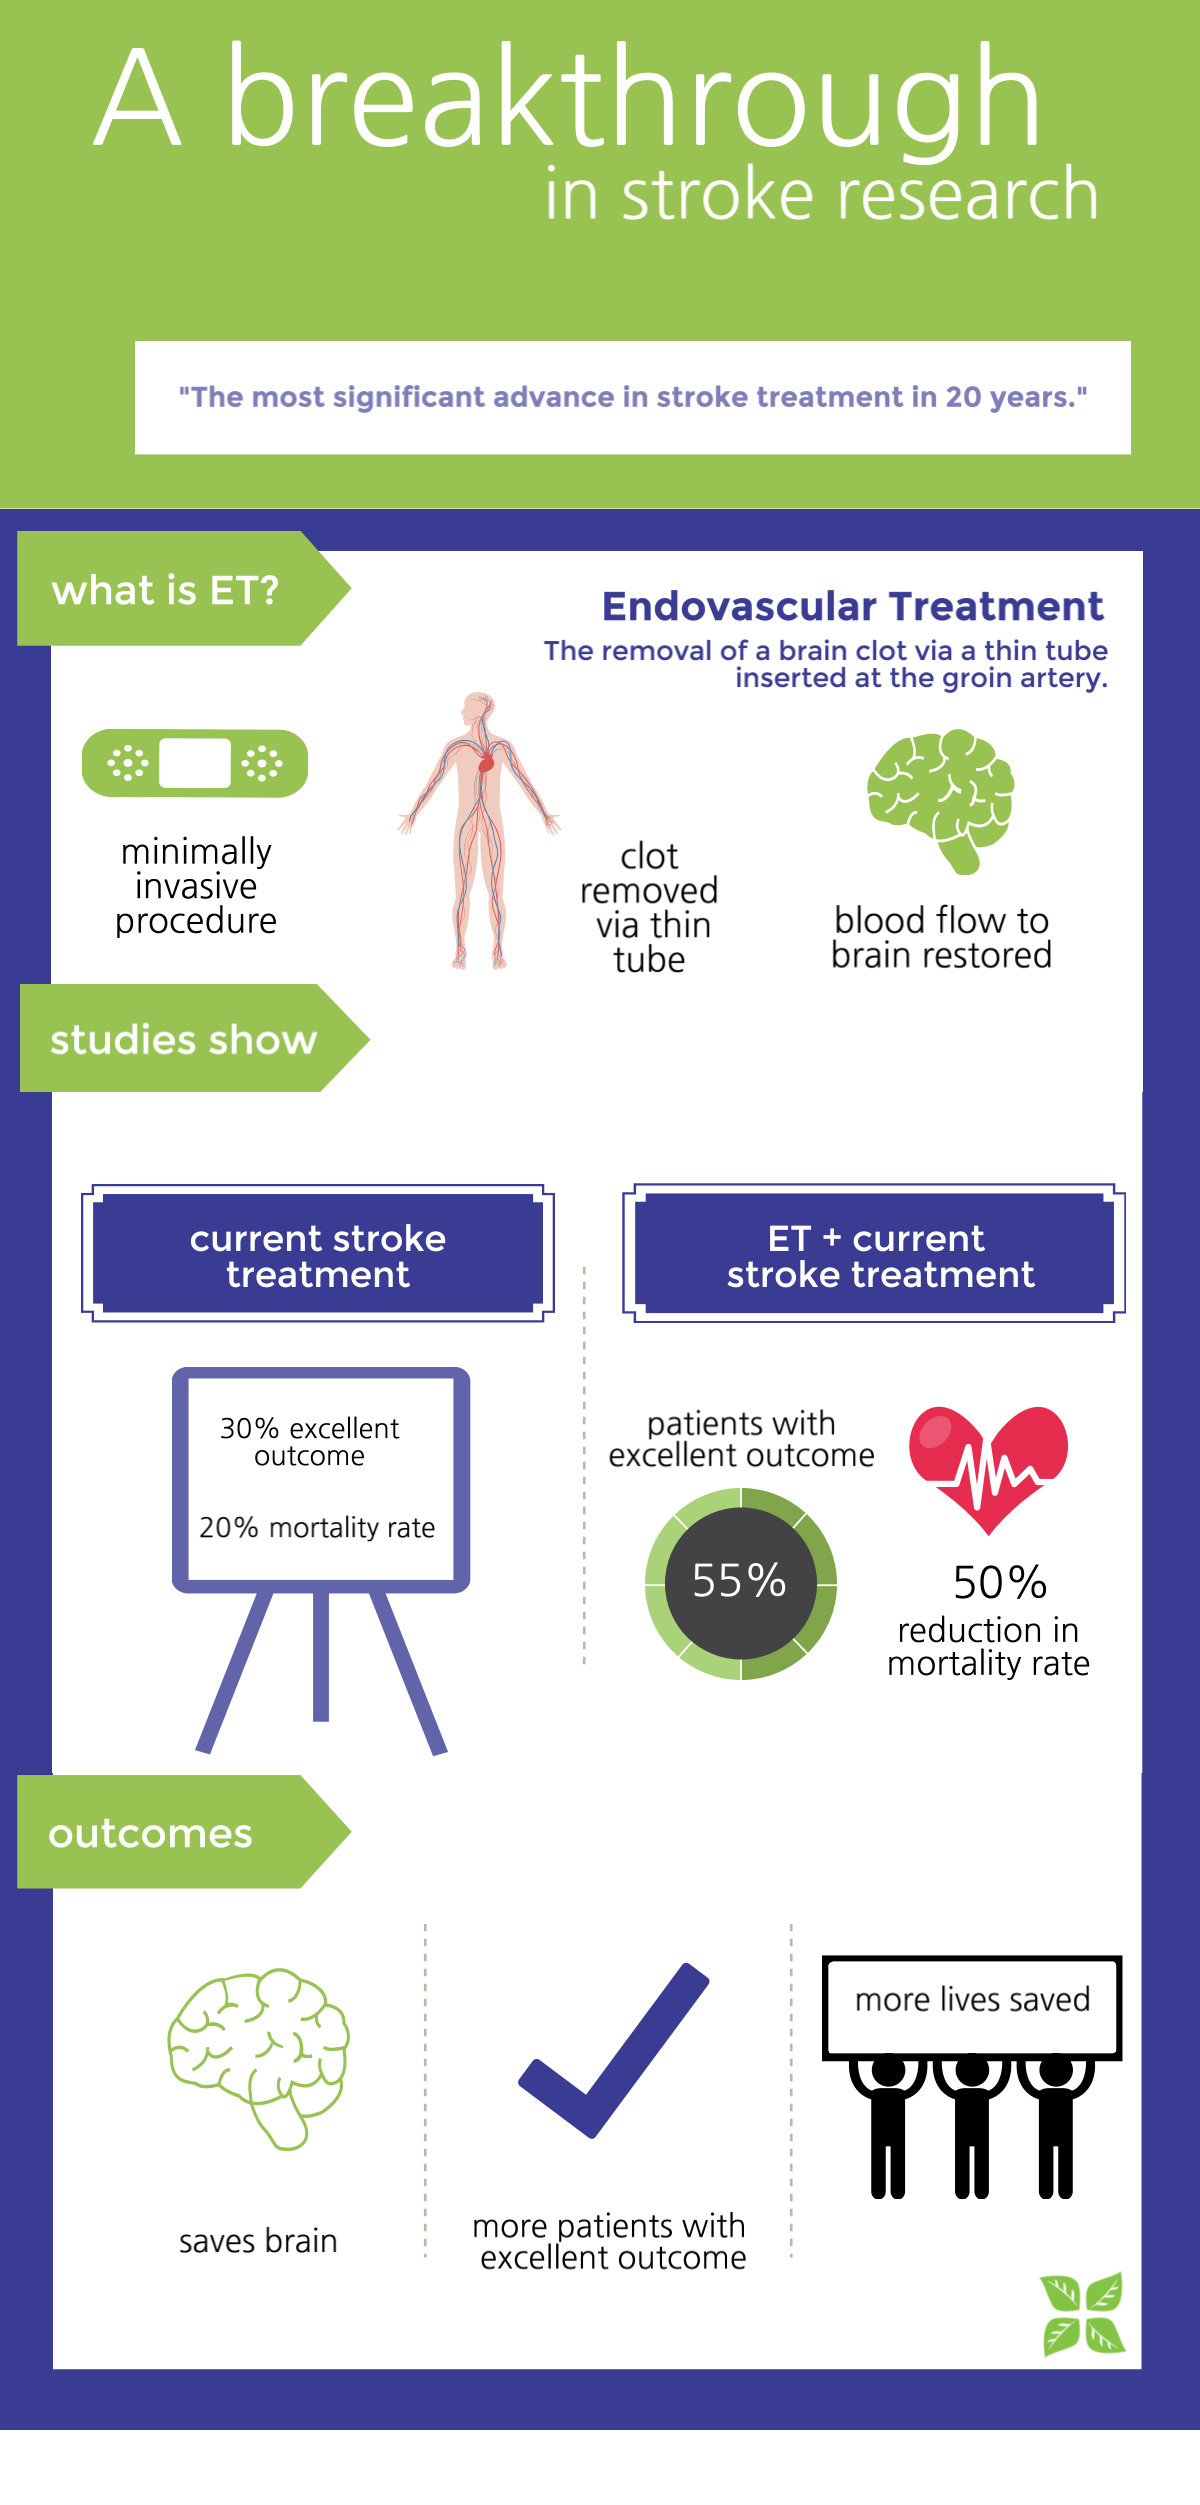 A breakthrough in stroke research - infographic